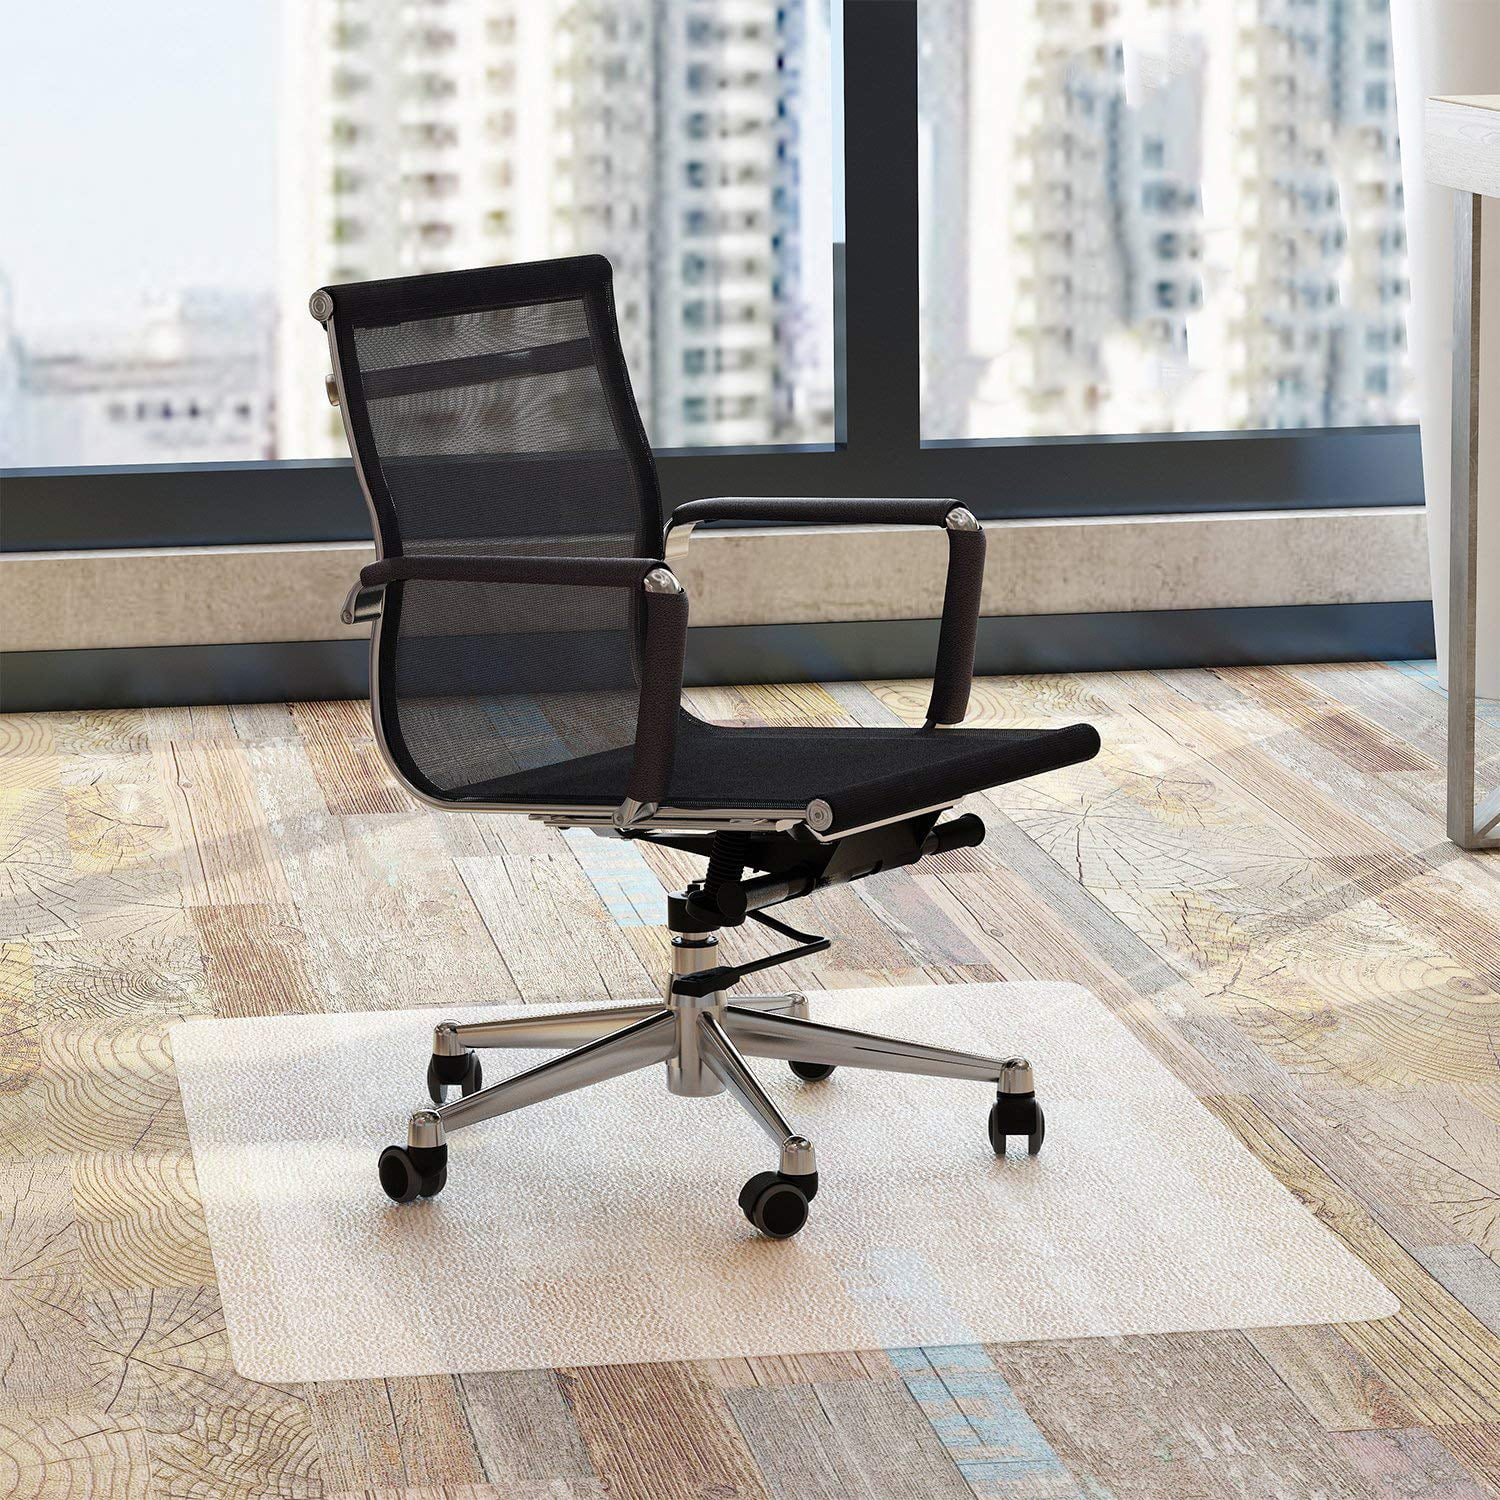 Chair Floor Mat Ubesgoo Chair Mat Office For Hardwood Floor Mats For Desk